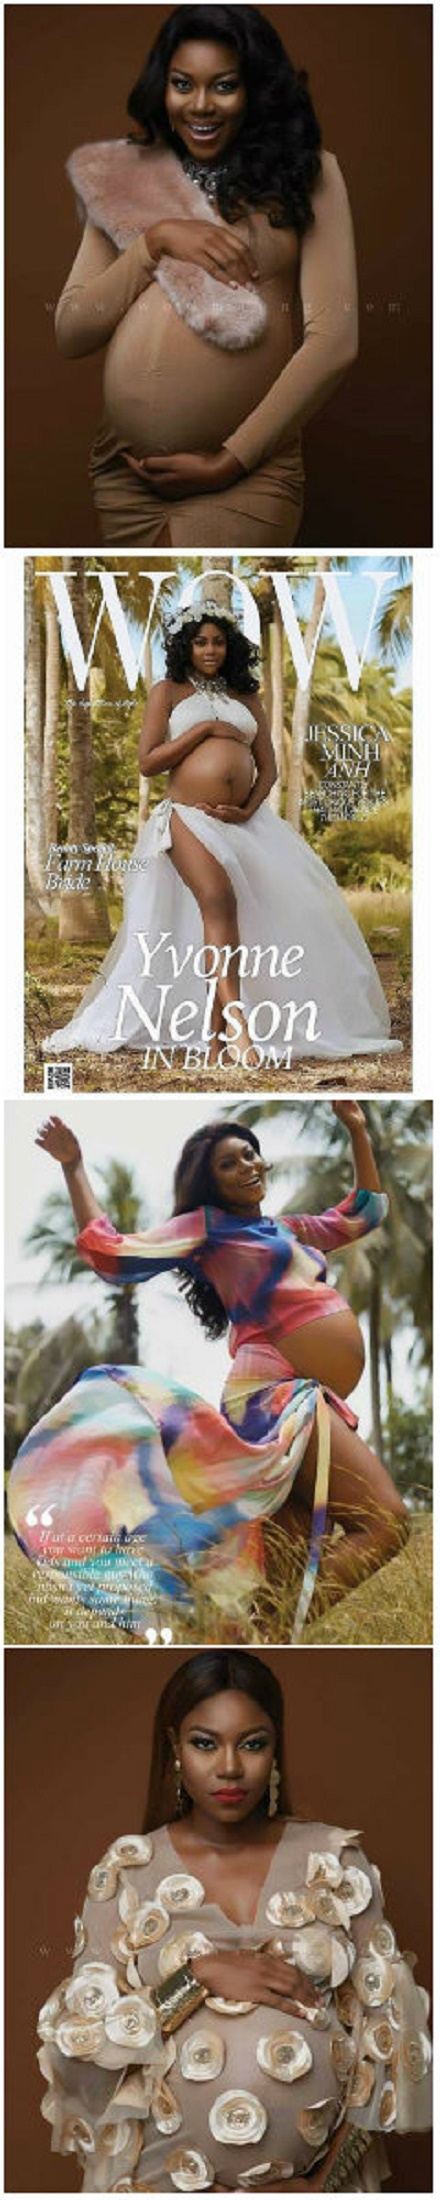 Finally, Yvonne Nelson has Posted Photos from when she was Pregnant